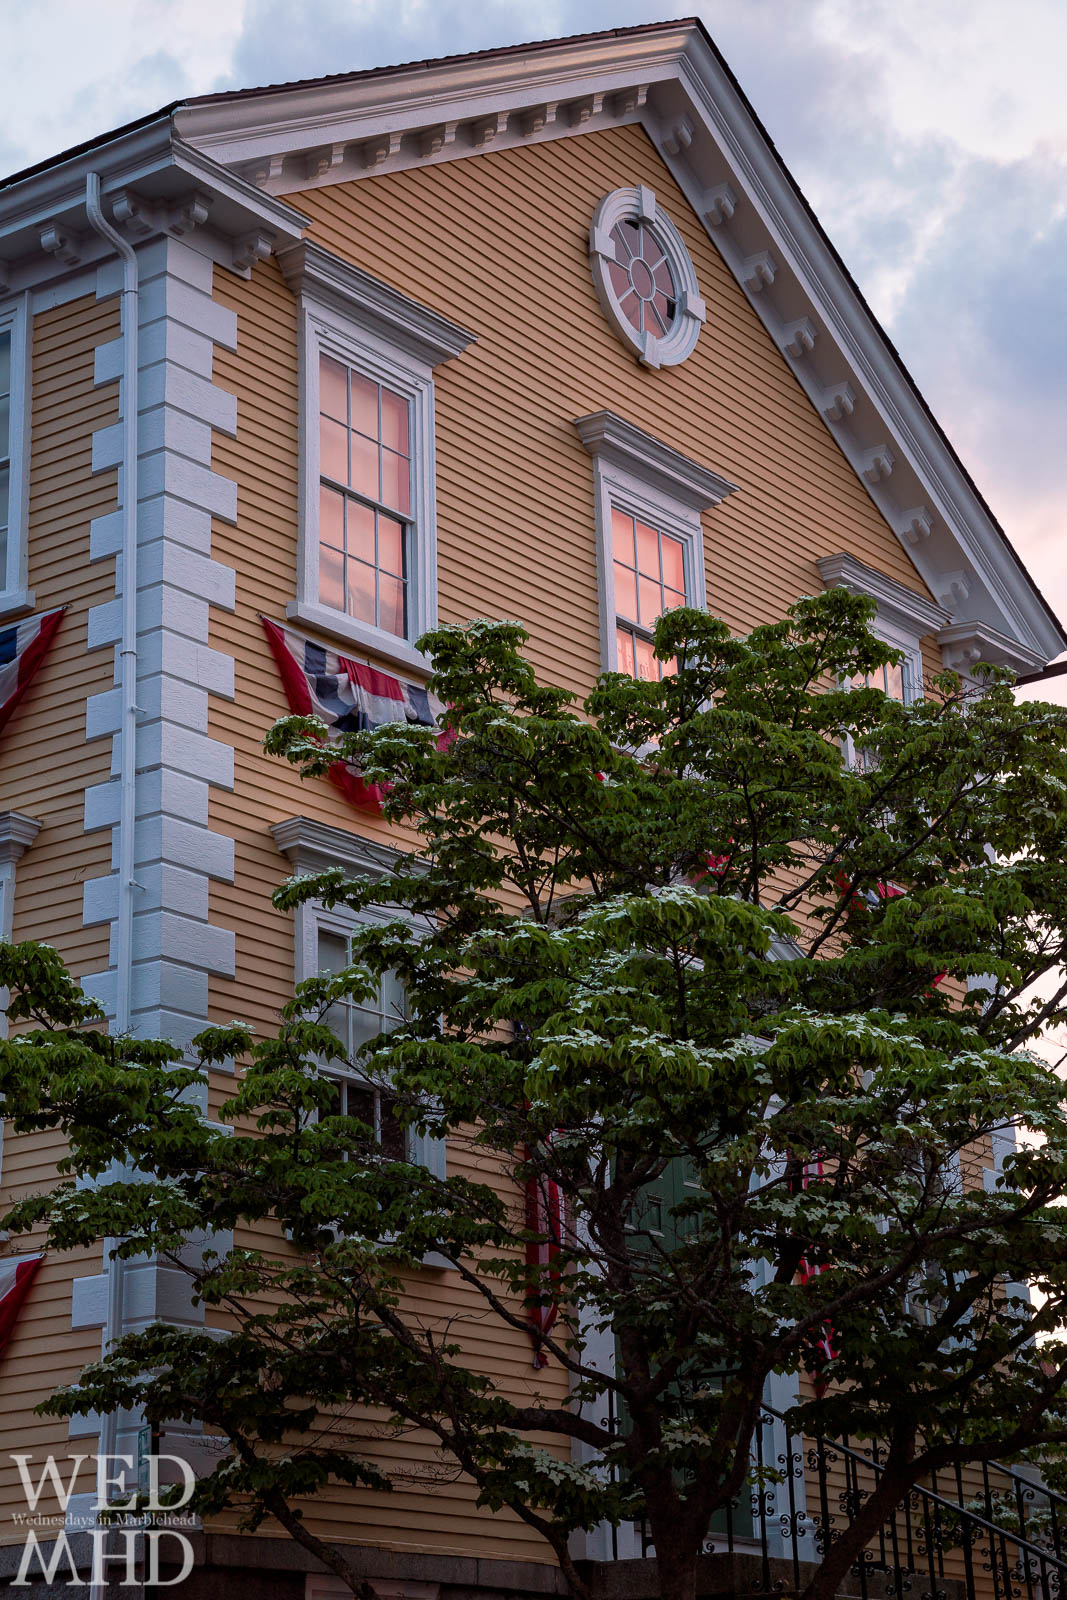 Old Town House is bathed in a pink glow reflecting in its windows just after the sun sets